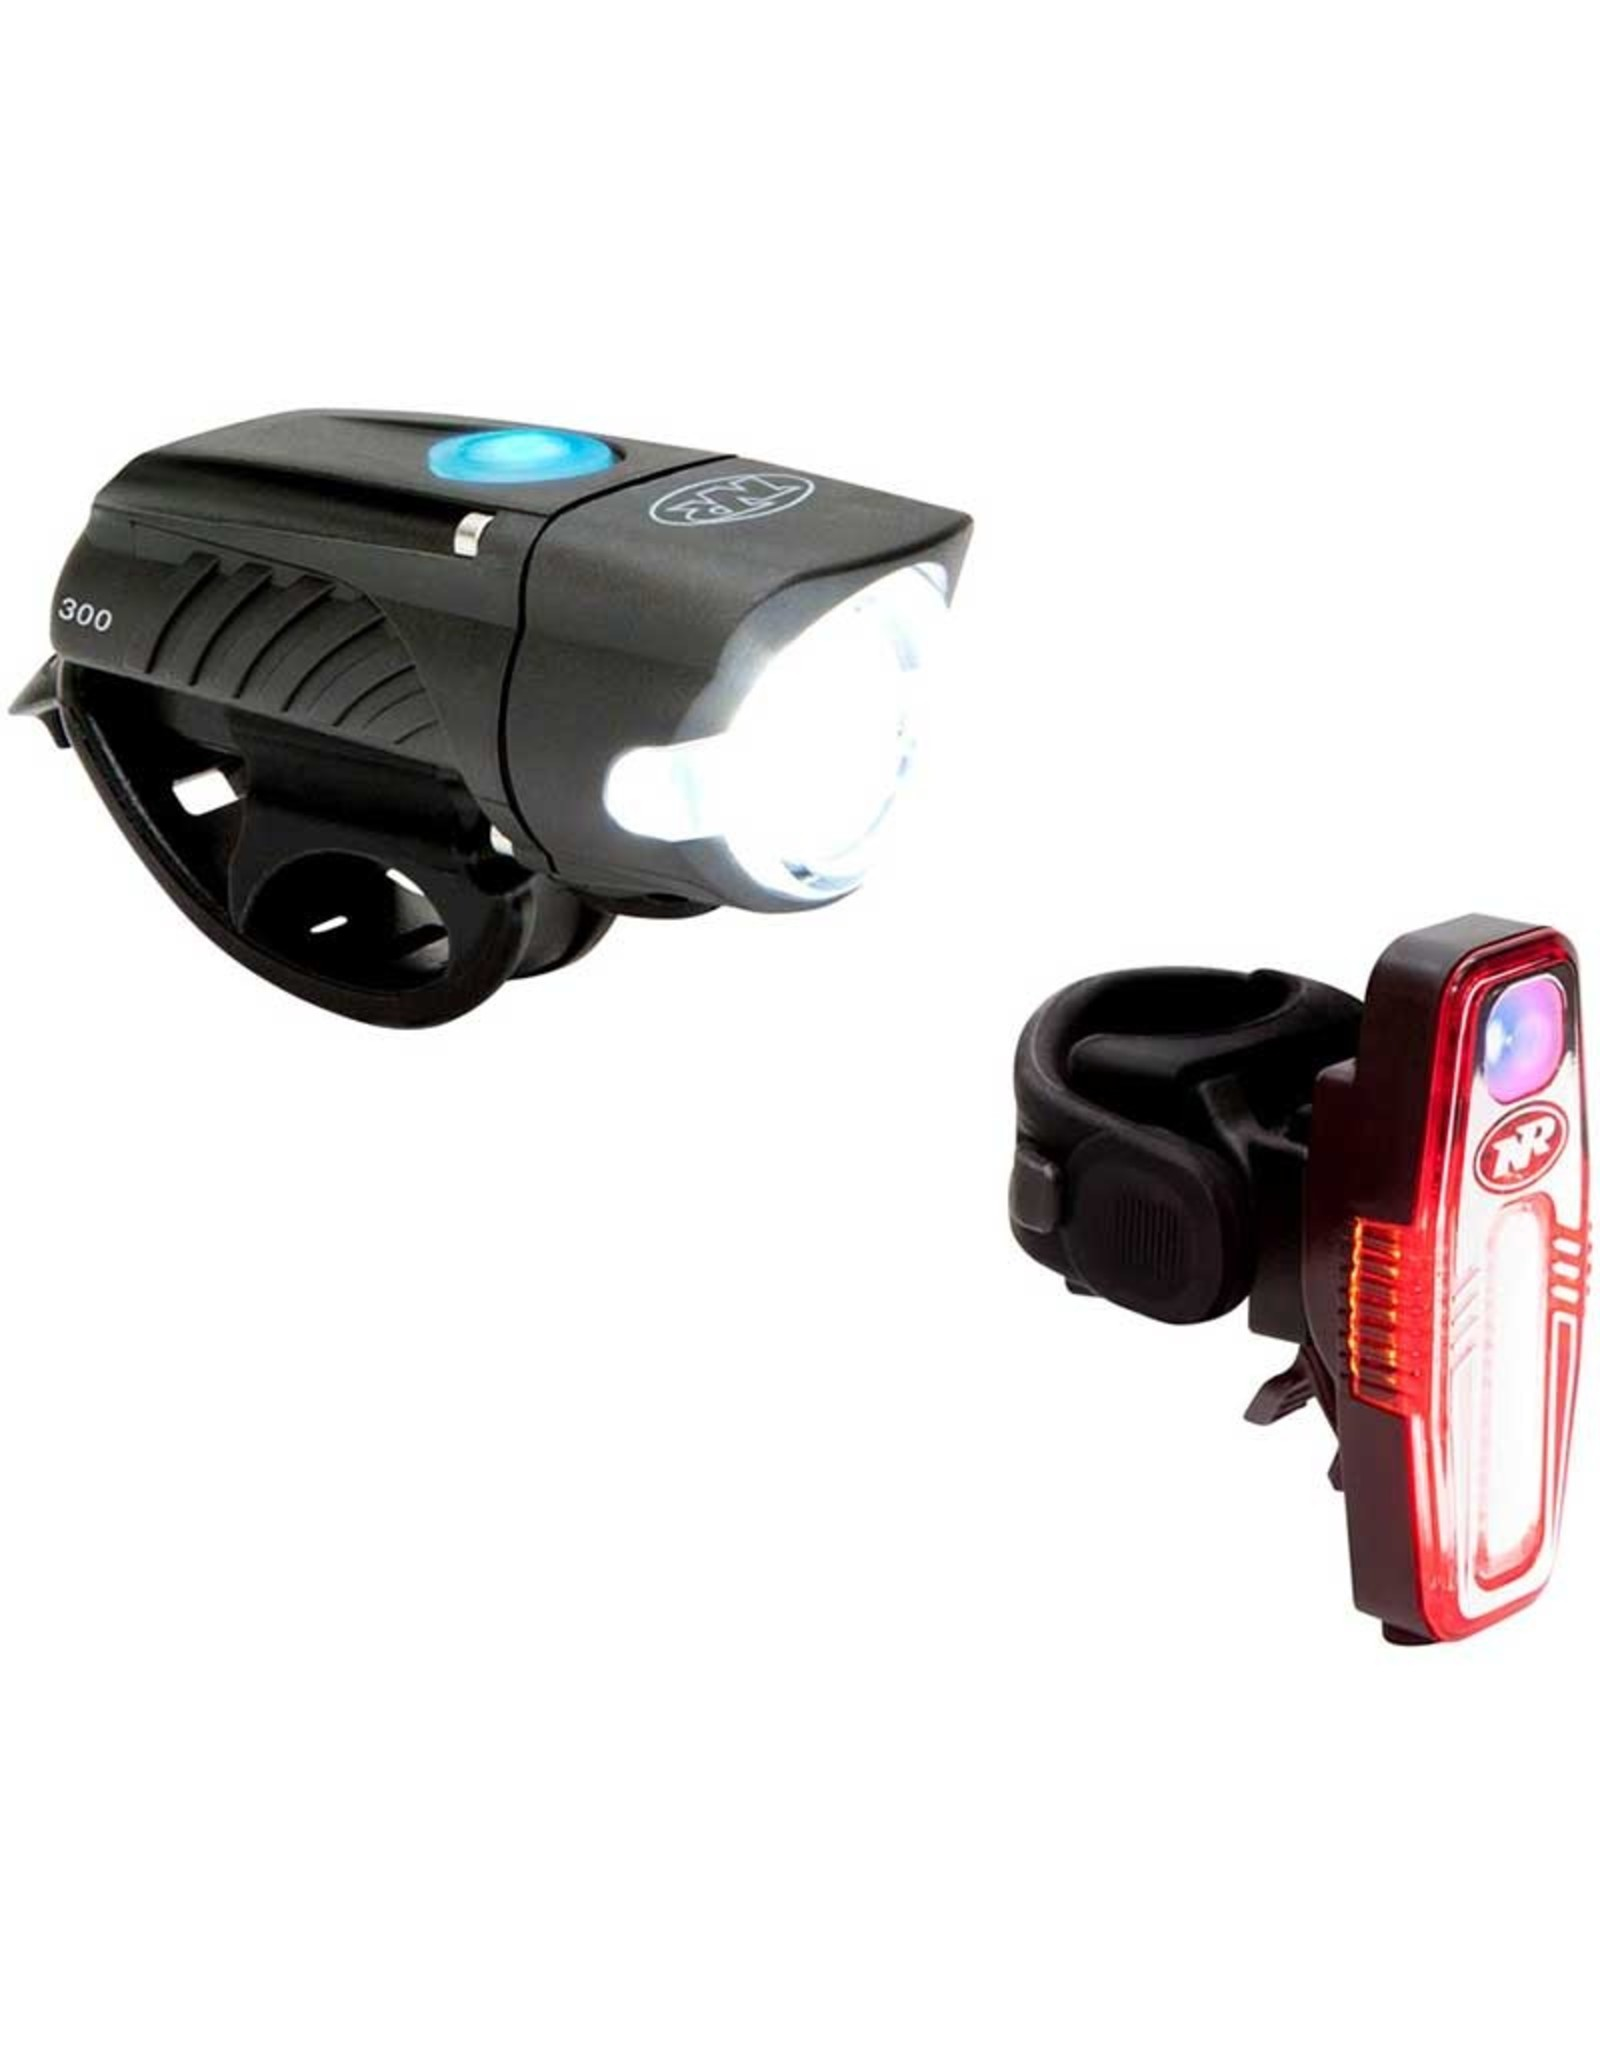 NiteRider Rechargeable Light Combo, Swift 300 & Sabre 80